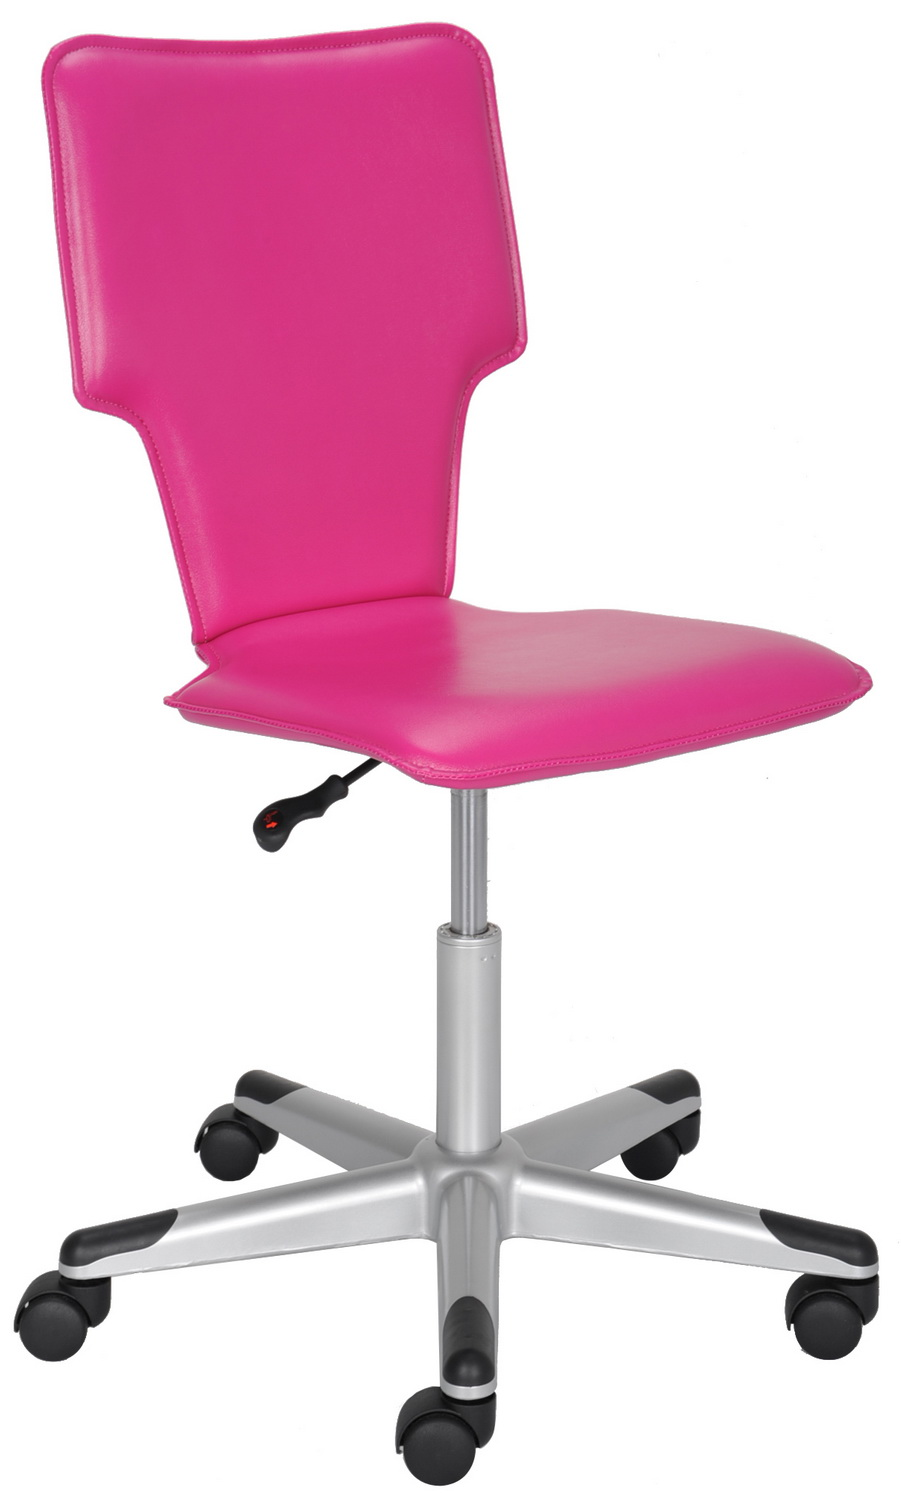 mainstays student office chair, multiple colors - walmart